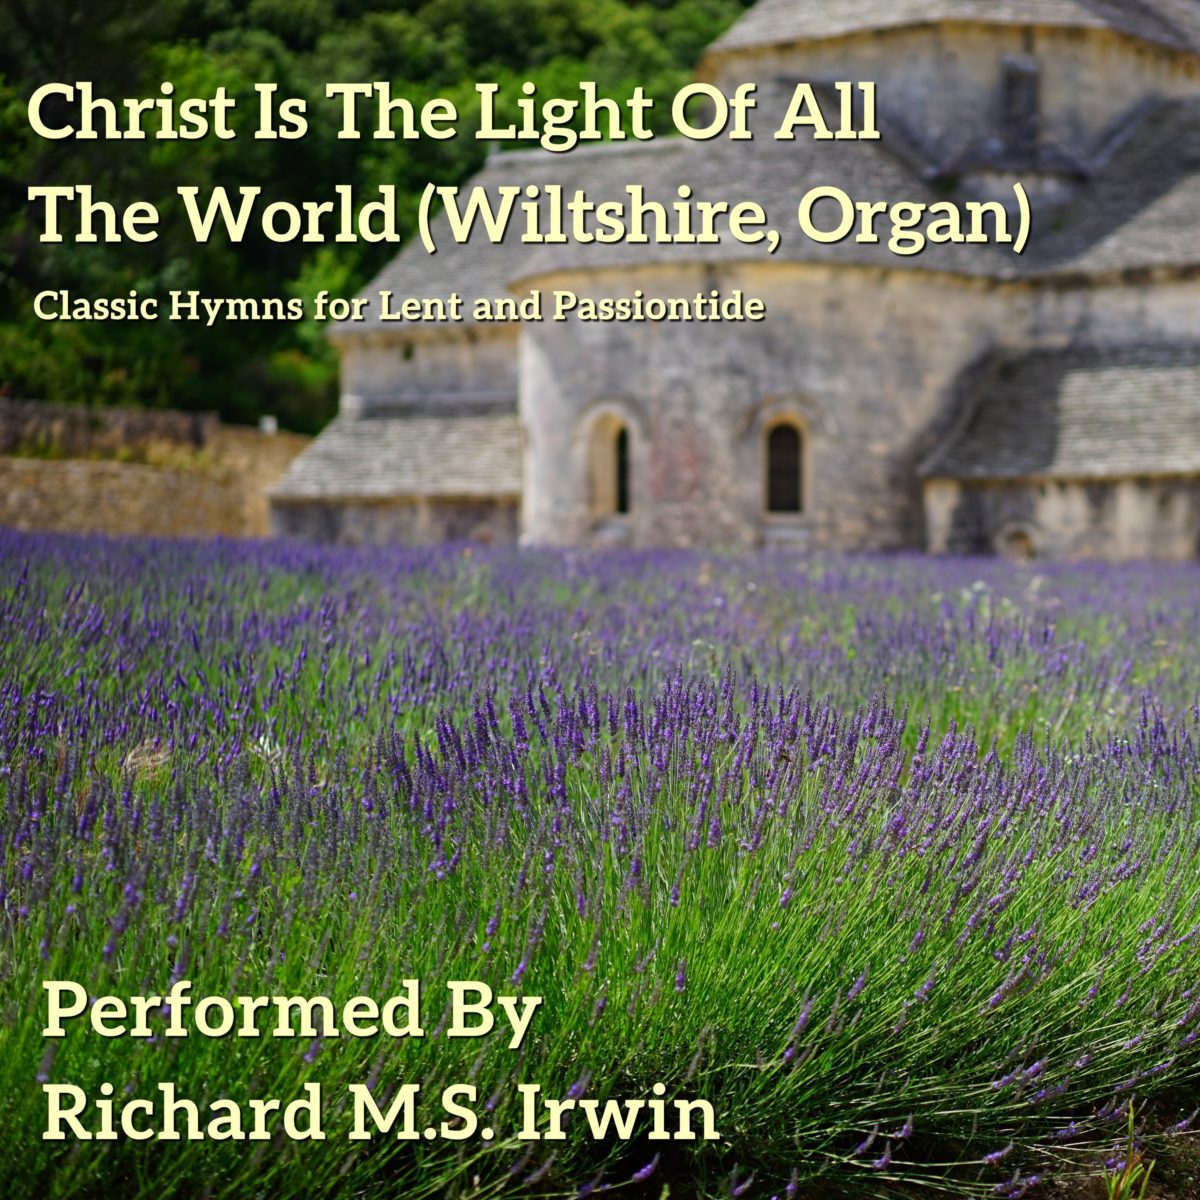 Christ Is The Light Of All The World (Wiltshire, Organ, 4 Verses)